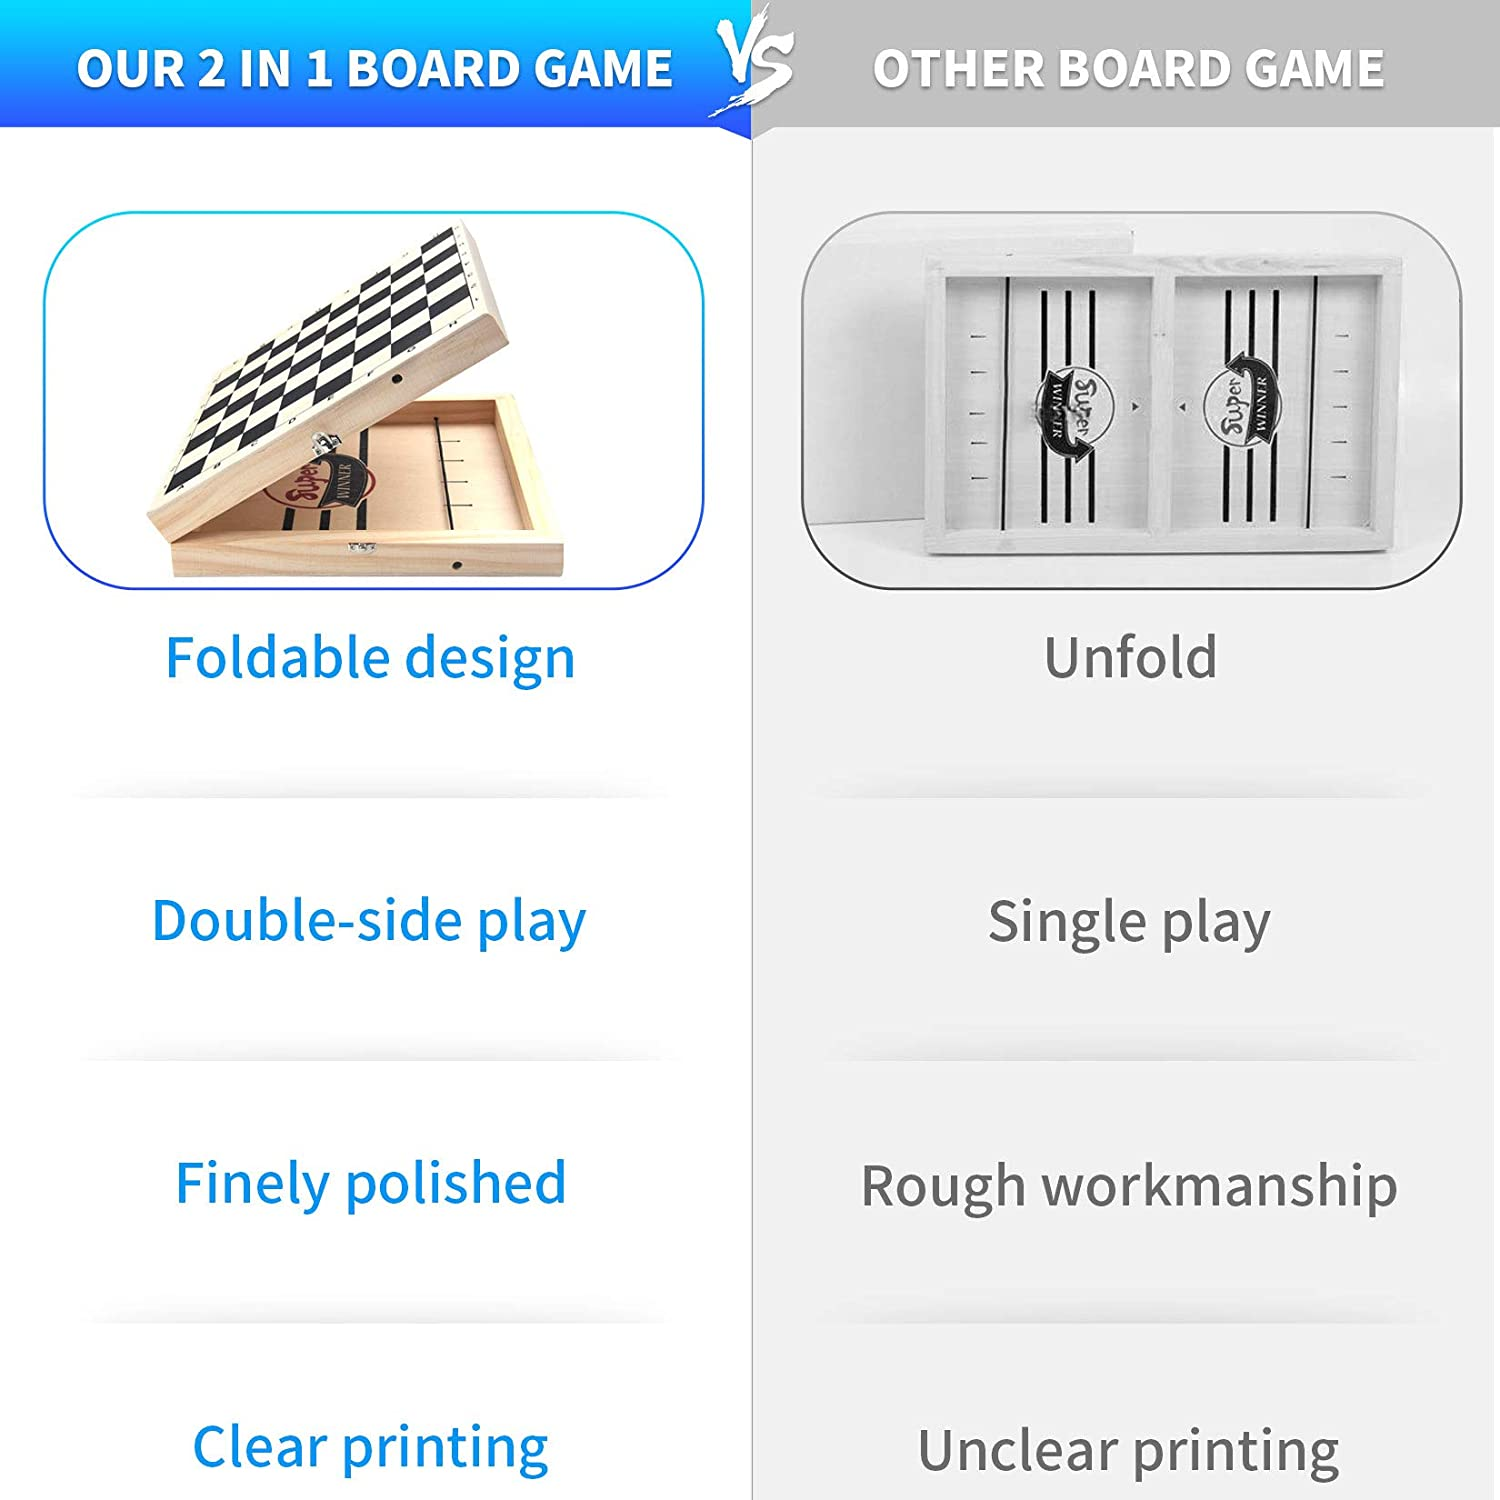 Wooden Fast Sling Puck Game Foosball Winner Board Game /& Chess Set for Kids and Adults 2-in-1 Hockey Games Travel Portable Folding Tabletop Chess Board Game Sets Parent-Child Interactive Chess Toy